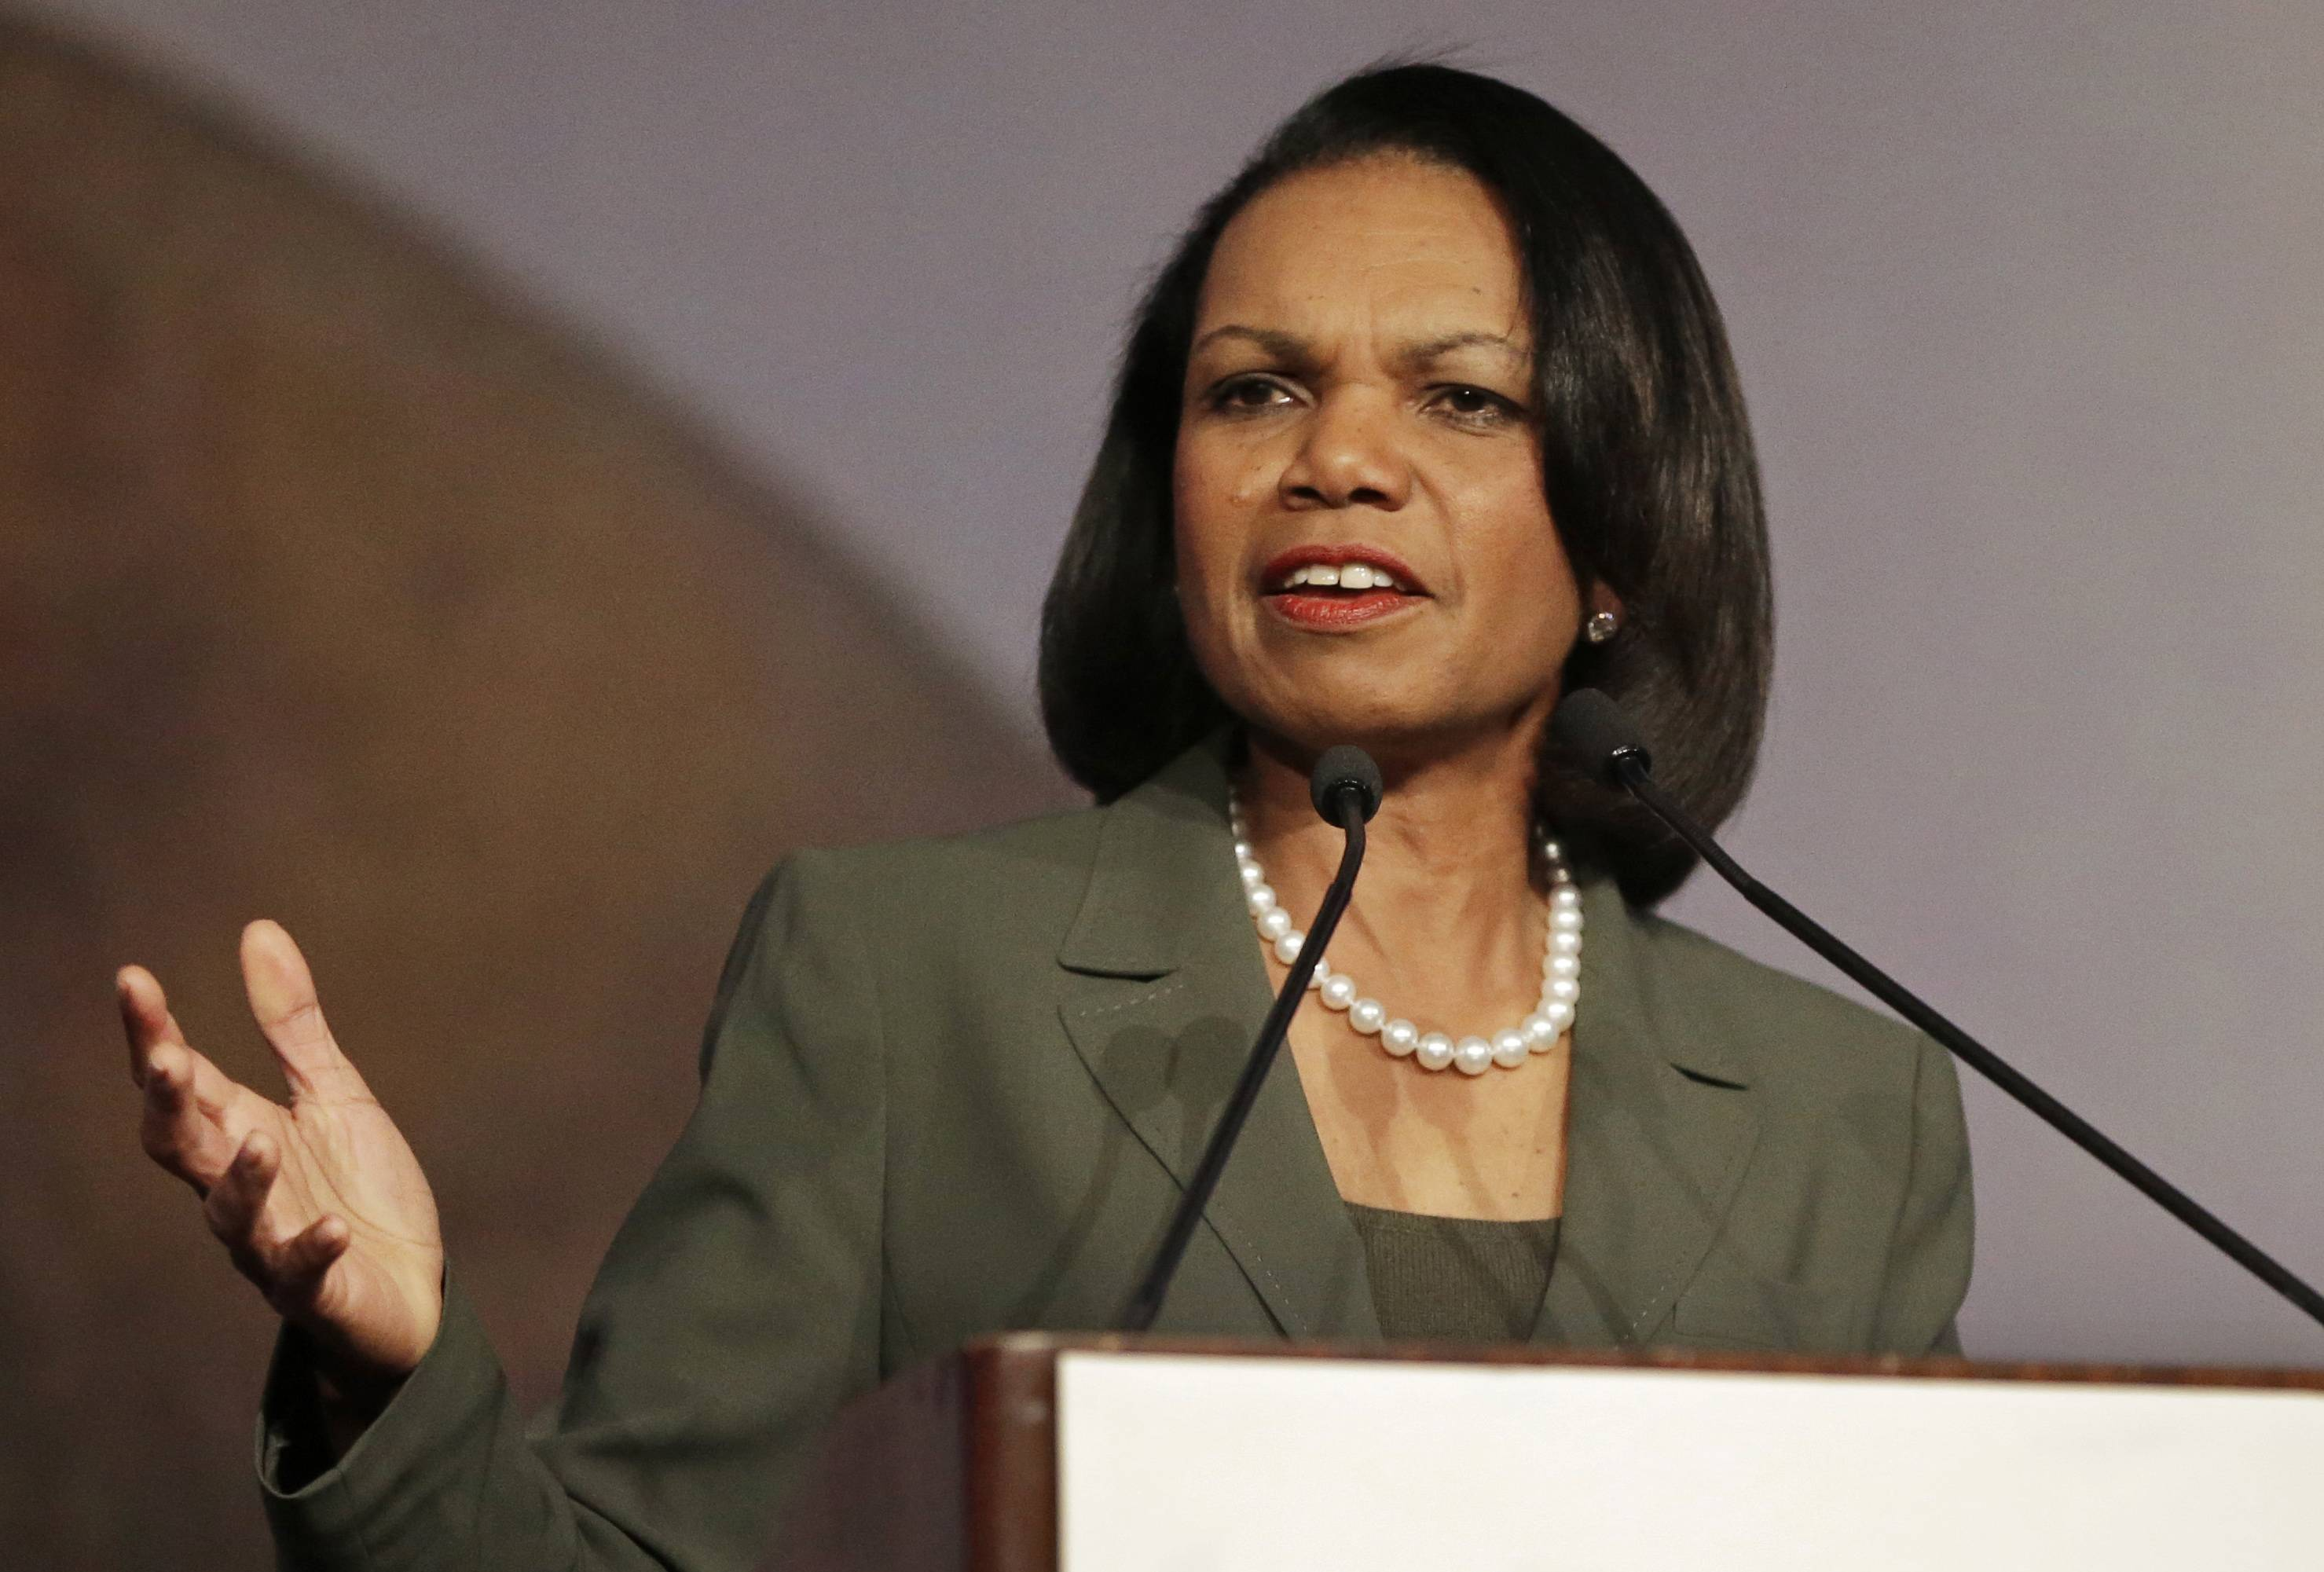 Secretary of State Condoleezza Rice speaks at the California Republican Party 2014 Spring Convention in Burlingame, Calif. Rice has decided against delivering the commencement address at Rutgers University following protests by some faculty and students over her role in the Iraq War.